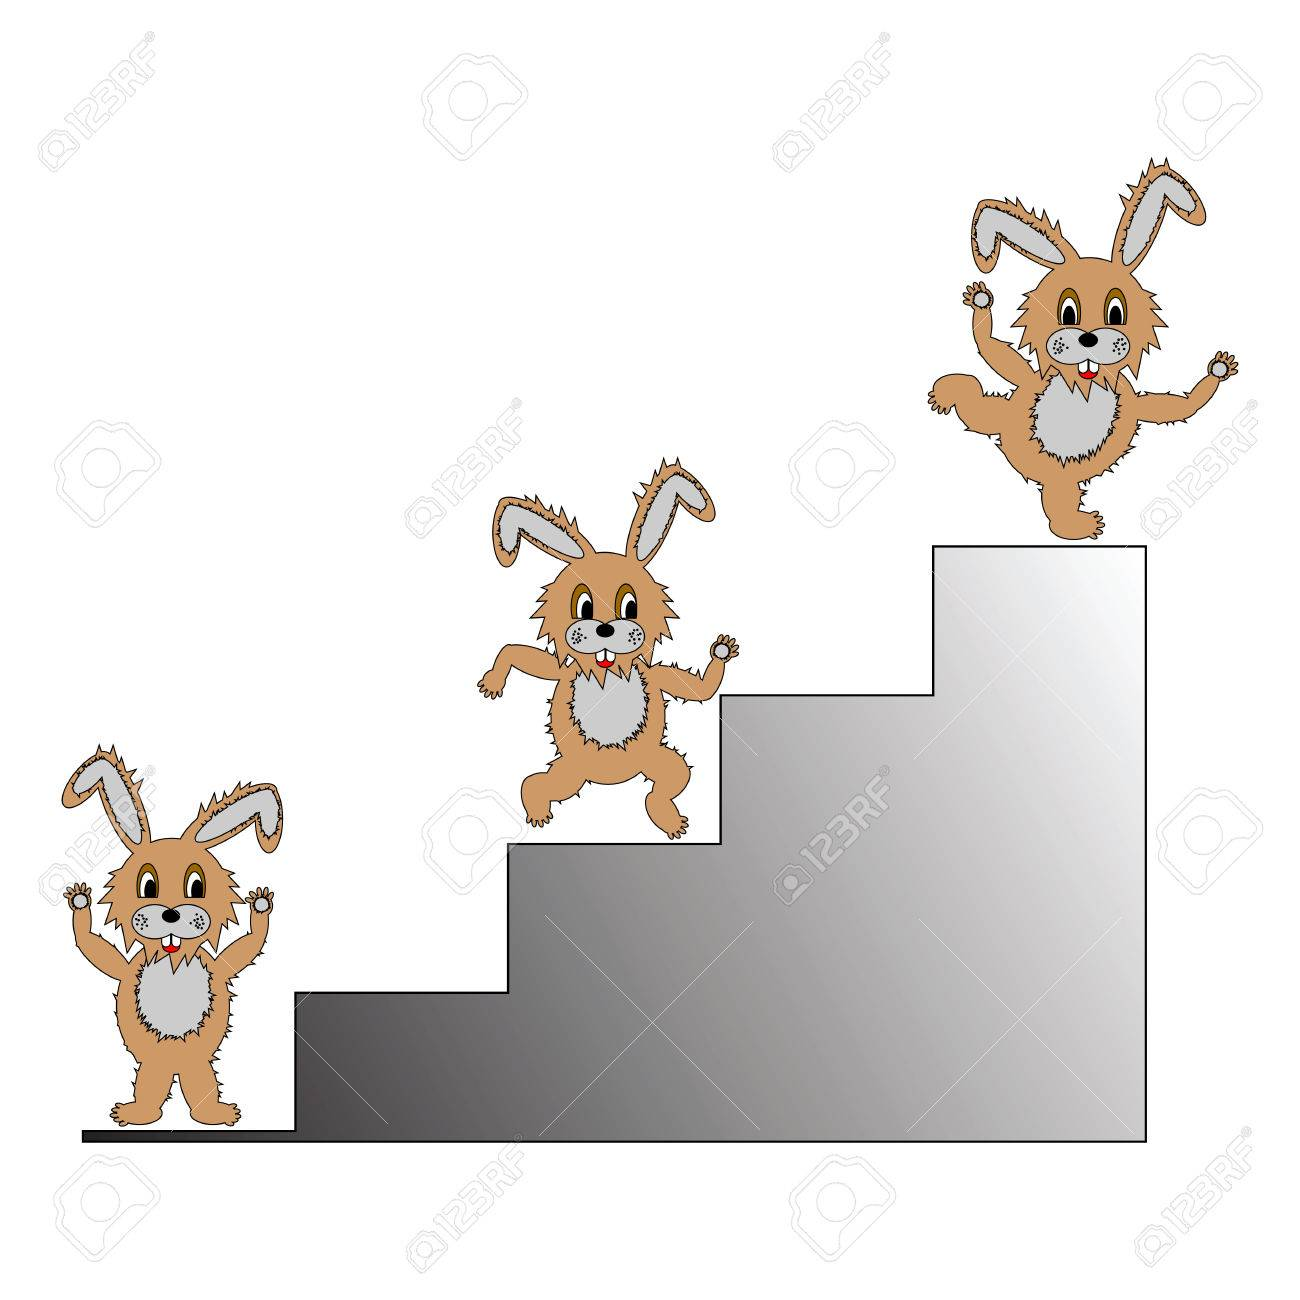 a funny cartoon rabbit climbing up on a ladder a symbol of success royalty free cliparts vectors and stock illustration image 24156519 123rf com